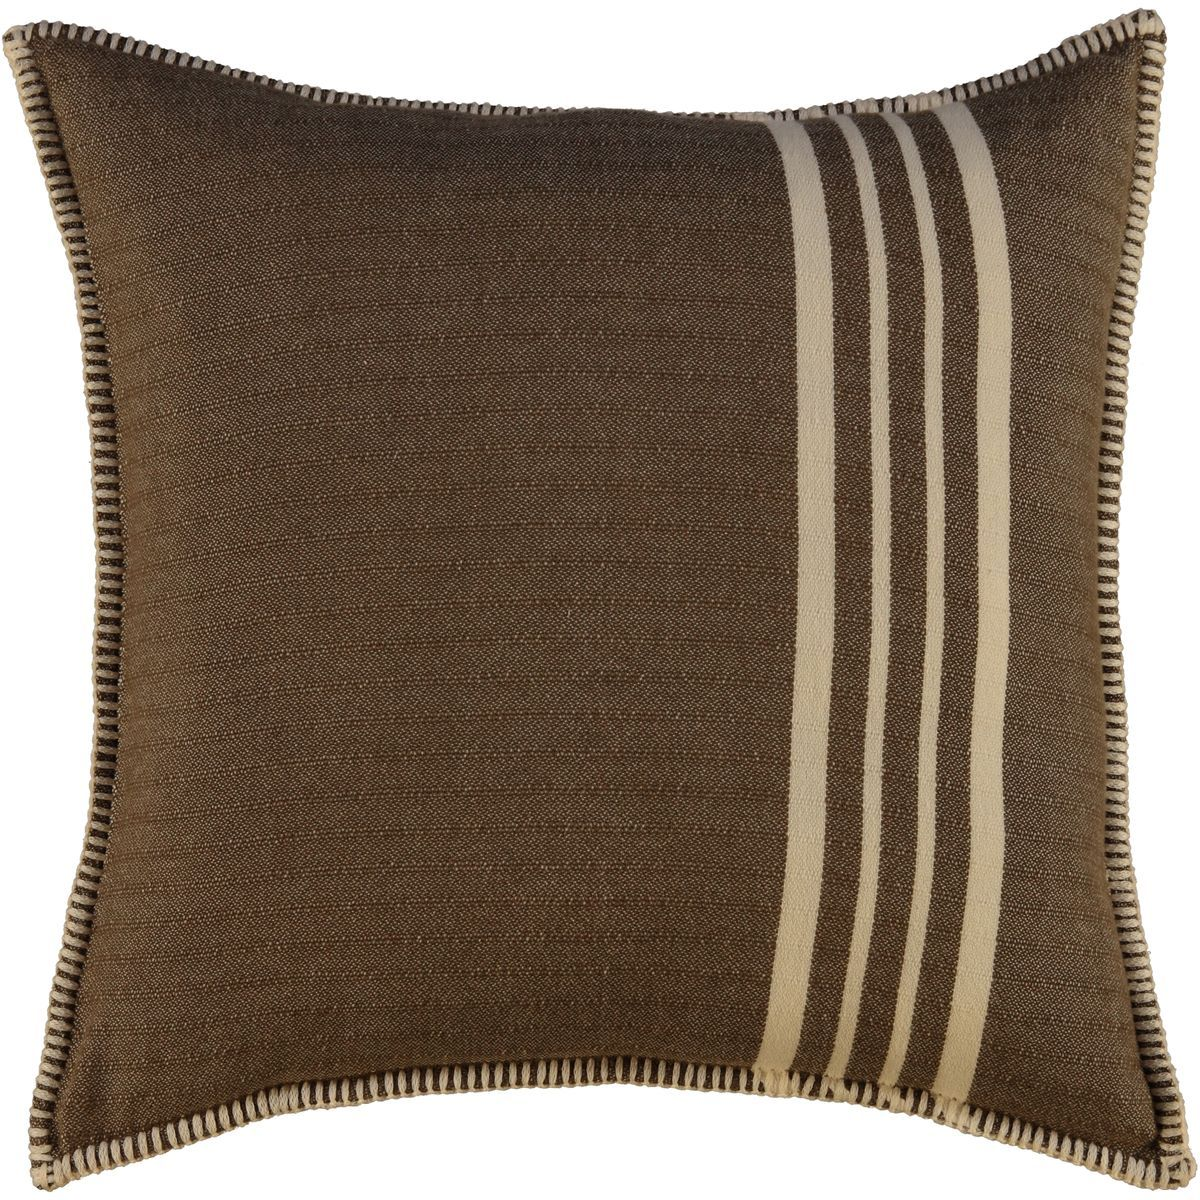 Cushion Cover Sultan - Khaki / 45x45